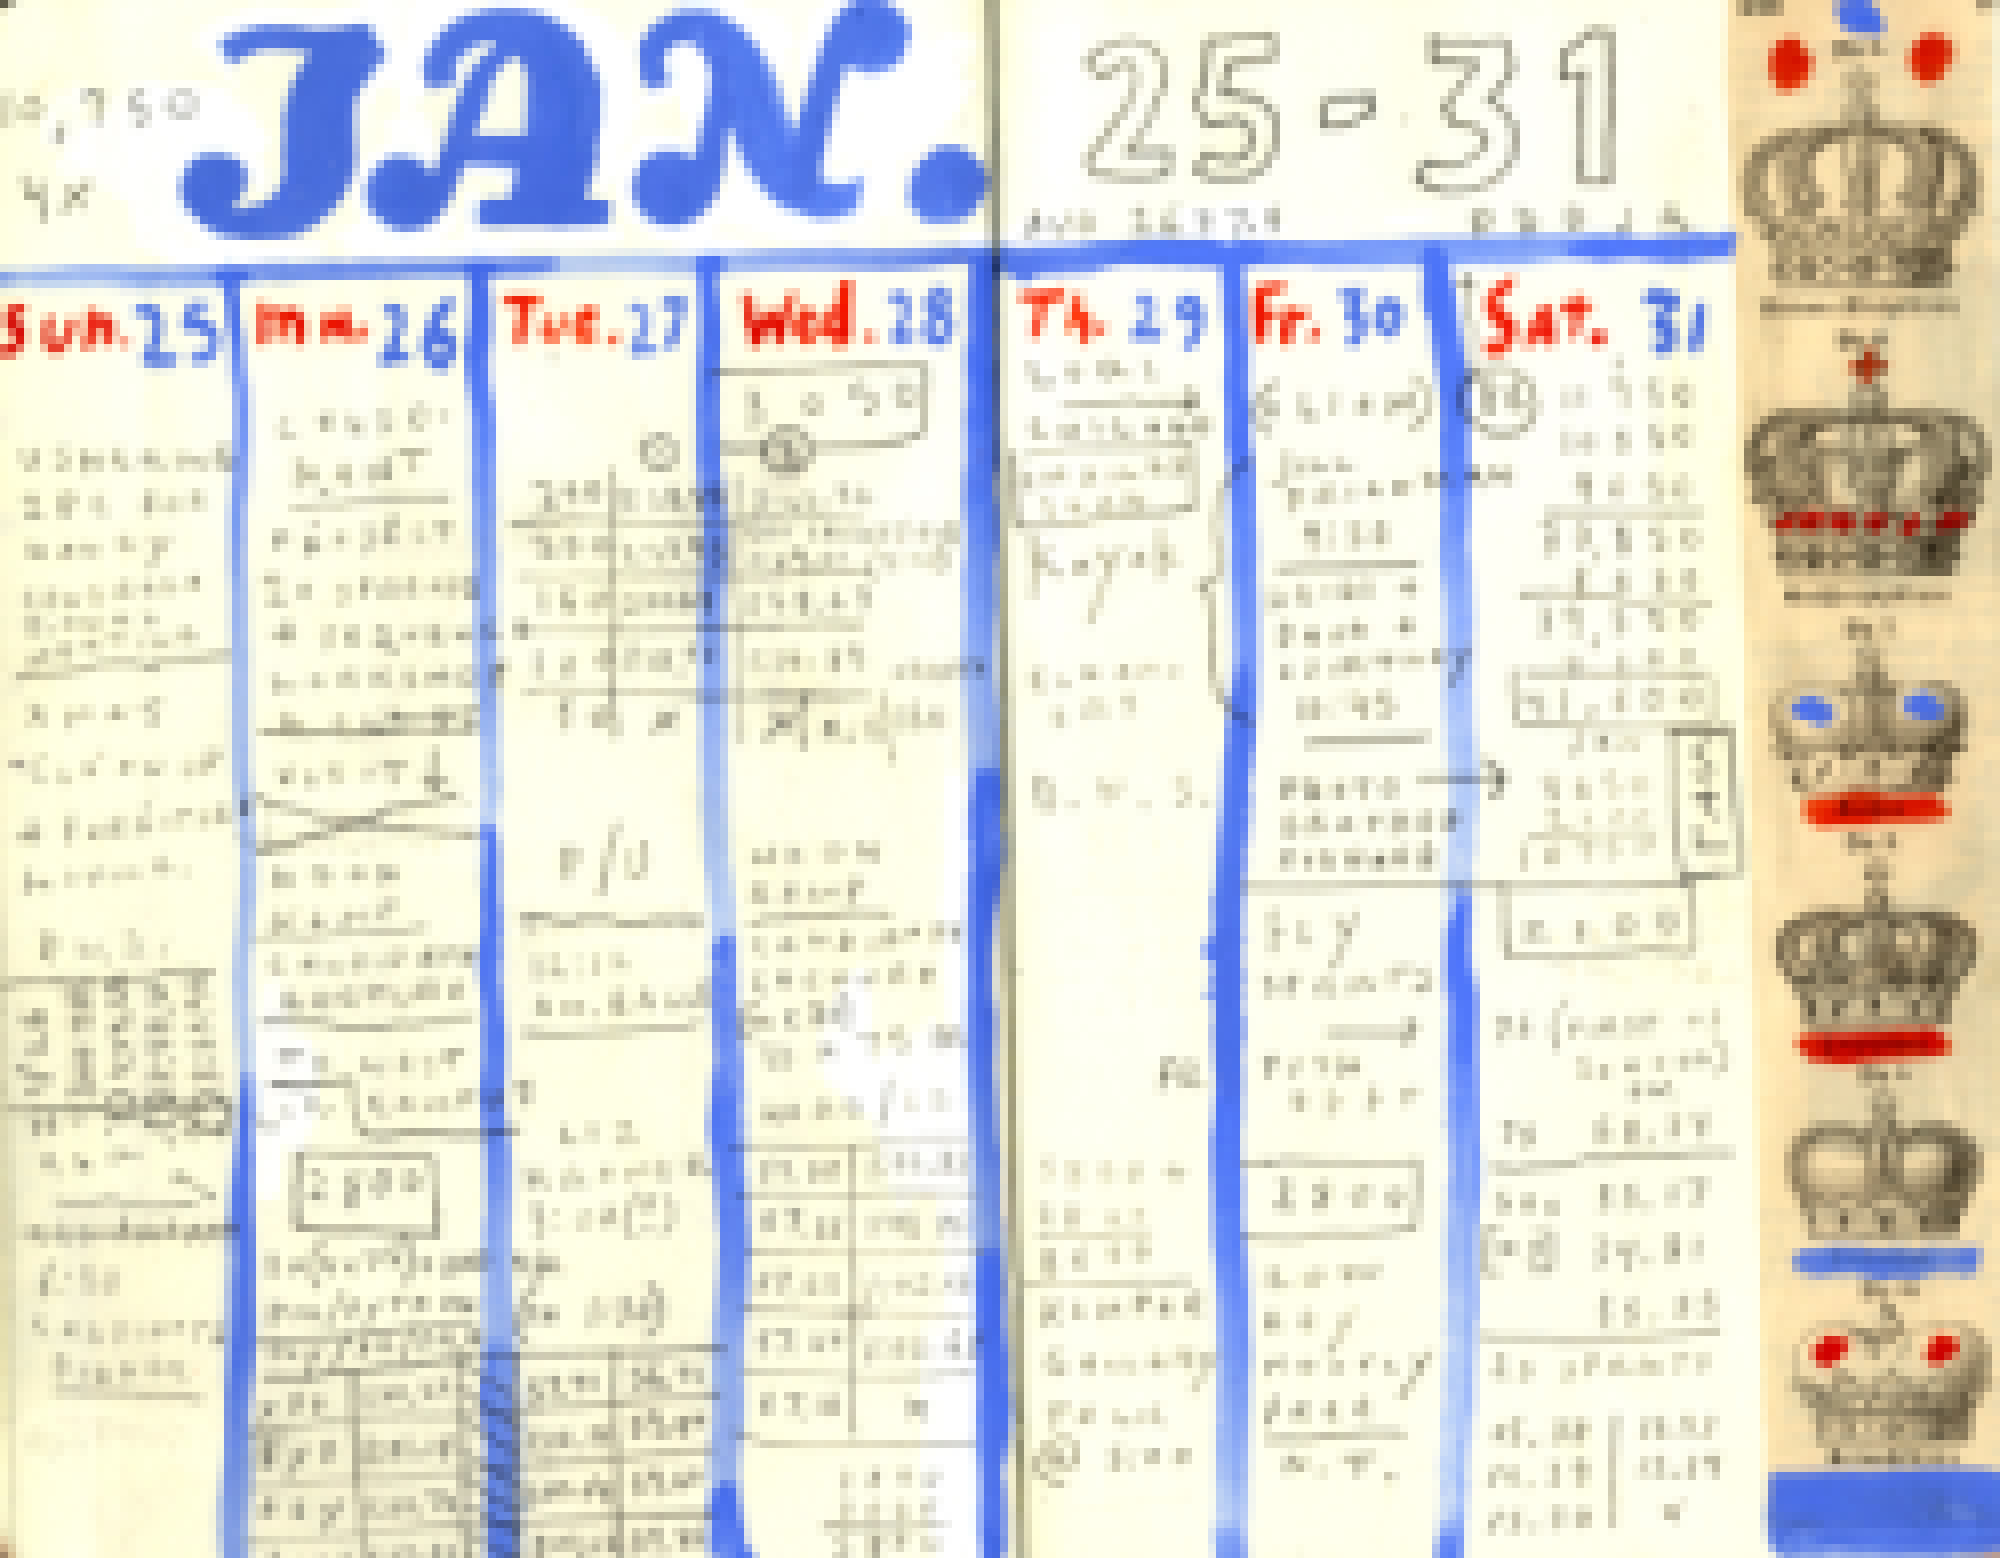 2015 Calendar Page (January 25-31),  filled in and blurred at bit. As ifthe whole thing weren't geeky enough, manydays are filled with detailed swimming yardage and workout times.